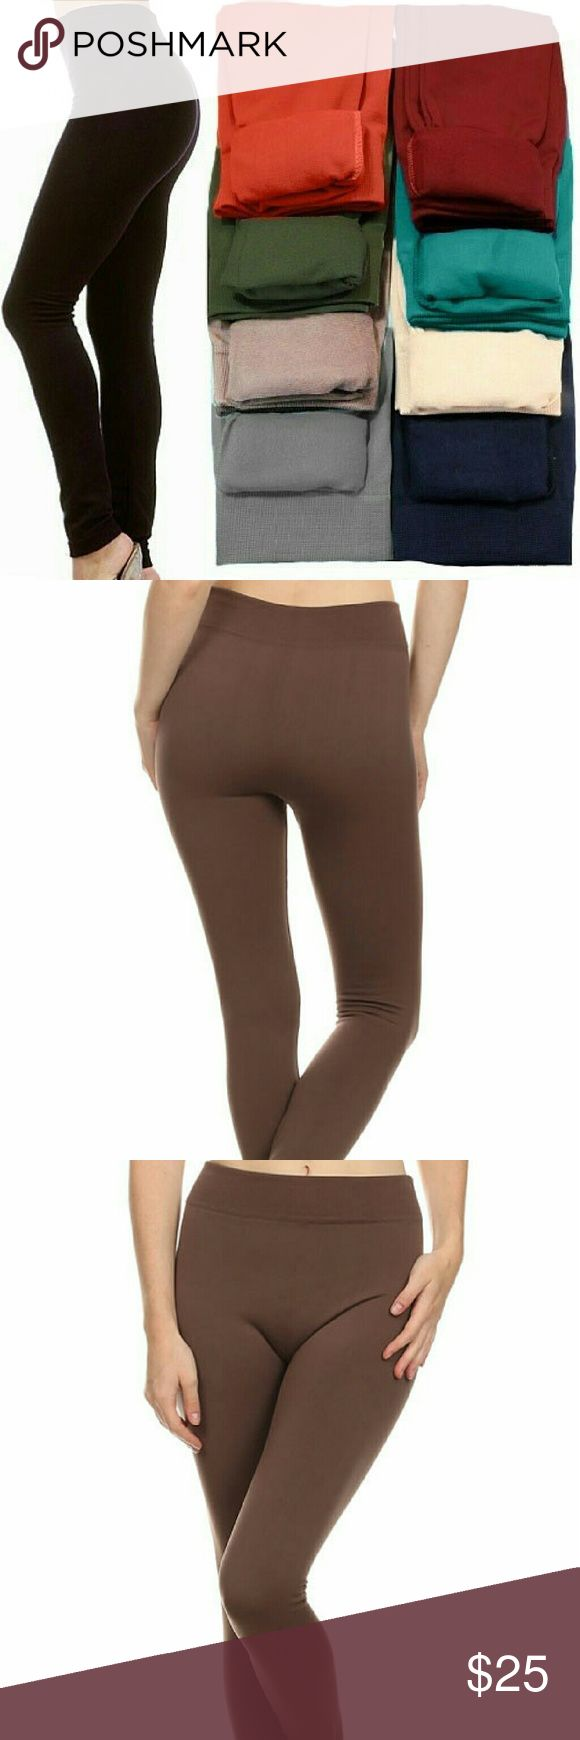 ‼️CLEARANCE‼️BLACK Fleece Lined Leggings 🔘ONE SIZE FITS MOST🔘(best fits S, M, L )  Super soft, very stretchy and stylish fleece leggings \ footless tights. Looks like a regular sleek legging but inside is soft and cozy fleece that is warm & comfy. Warmth and style without bulkiness. 65% Polyester, 20% Cotton, 15% Spandex.  Available in other listings: DK. BROWN CHARCOAL, MIDNIGHT BLUE, WINE & SAND.  🔴Price Firm Unless Bundled 🔴No Trades Boutique Pants Leggings